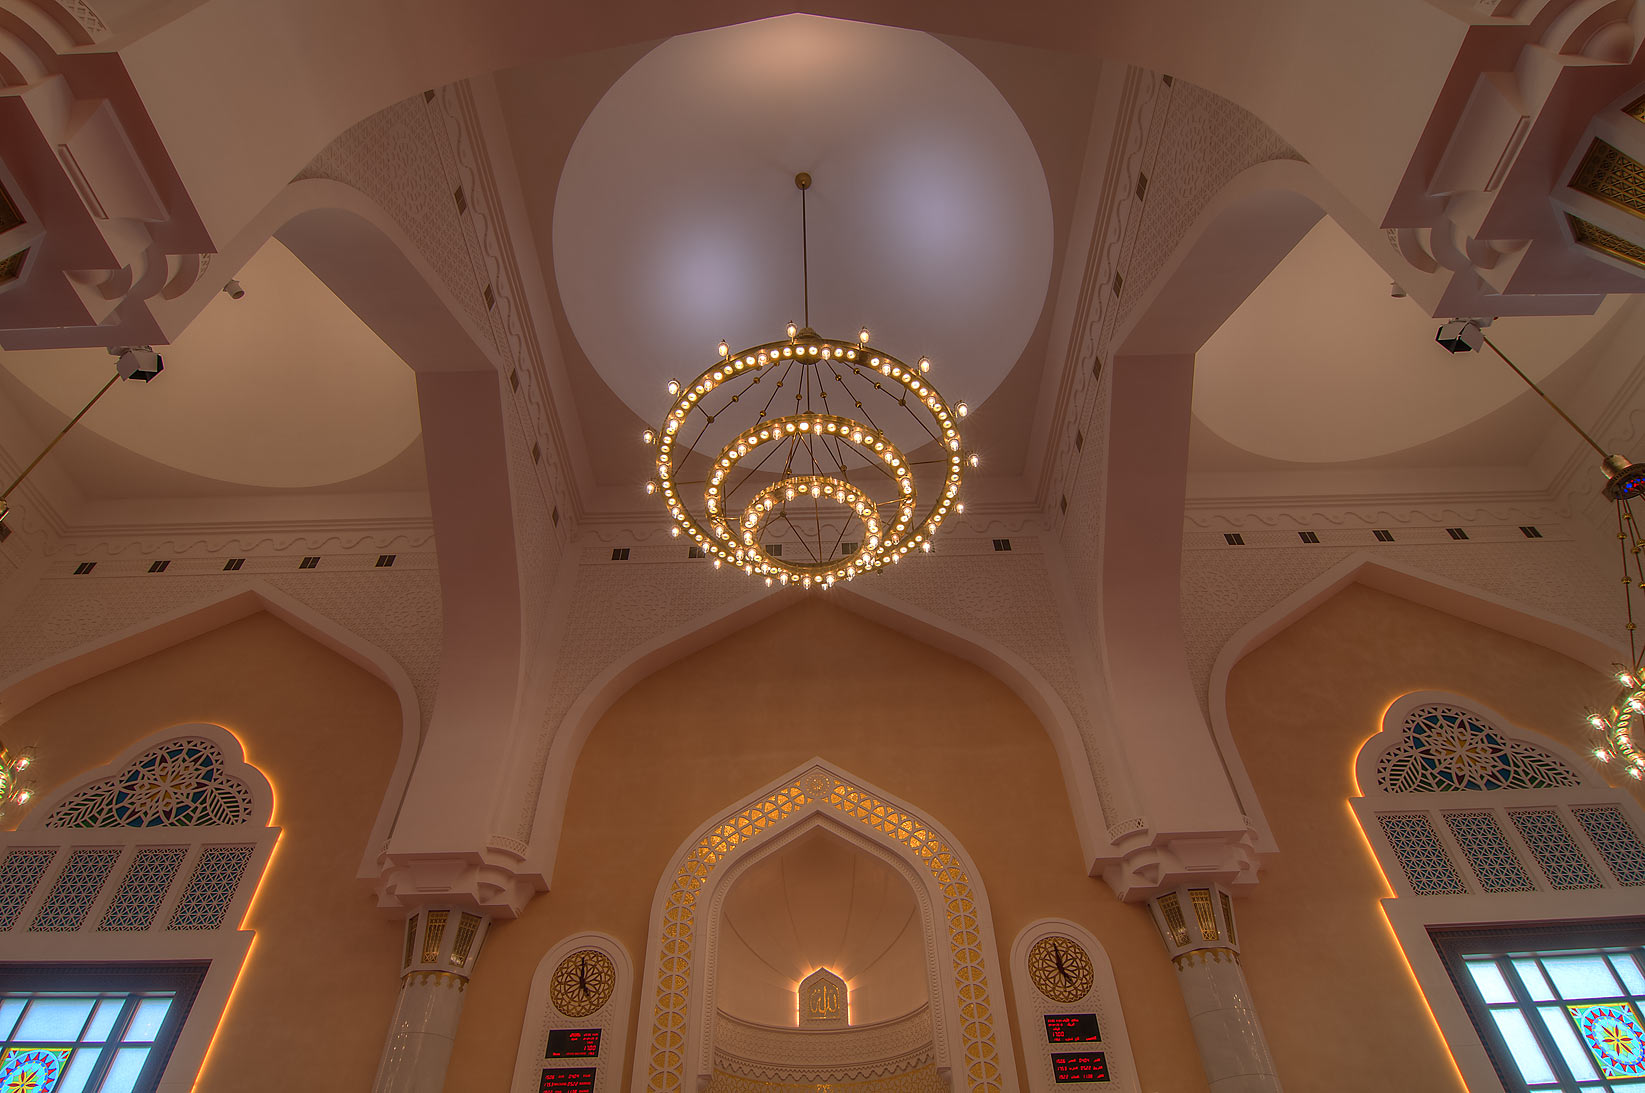 Area of mihrab (semicircular prayer niche) in...Ibn Abdul Wahhab Mosque). Doha, Qatar